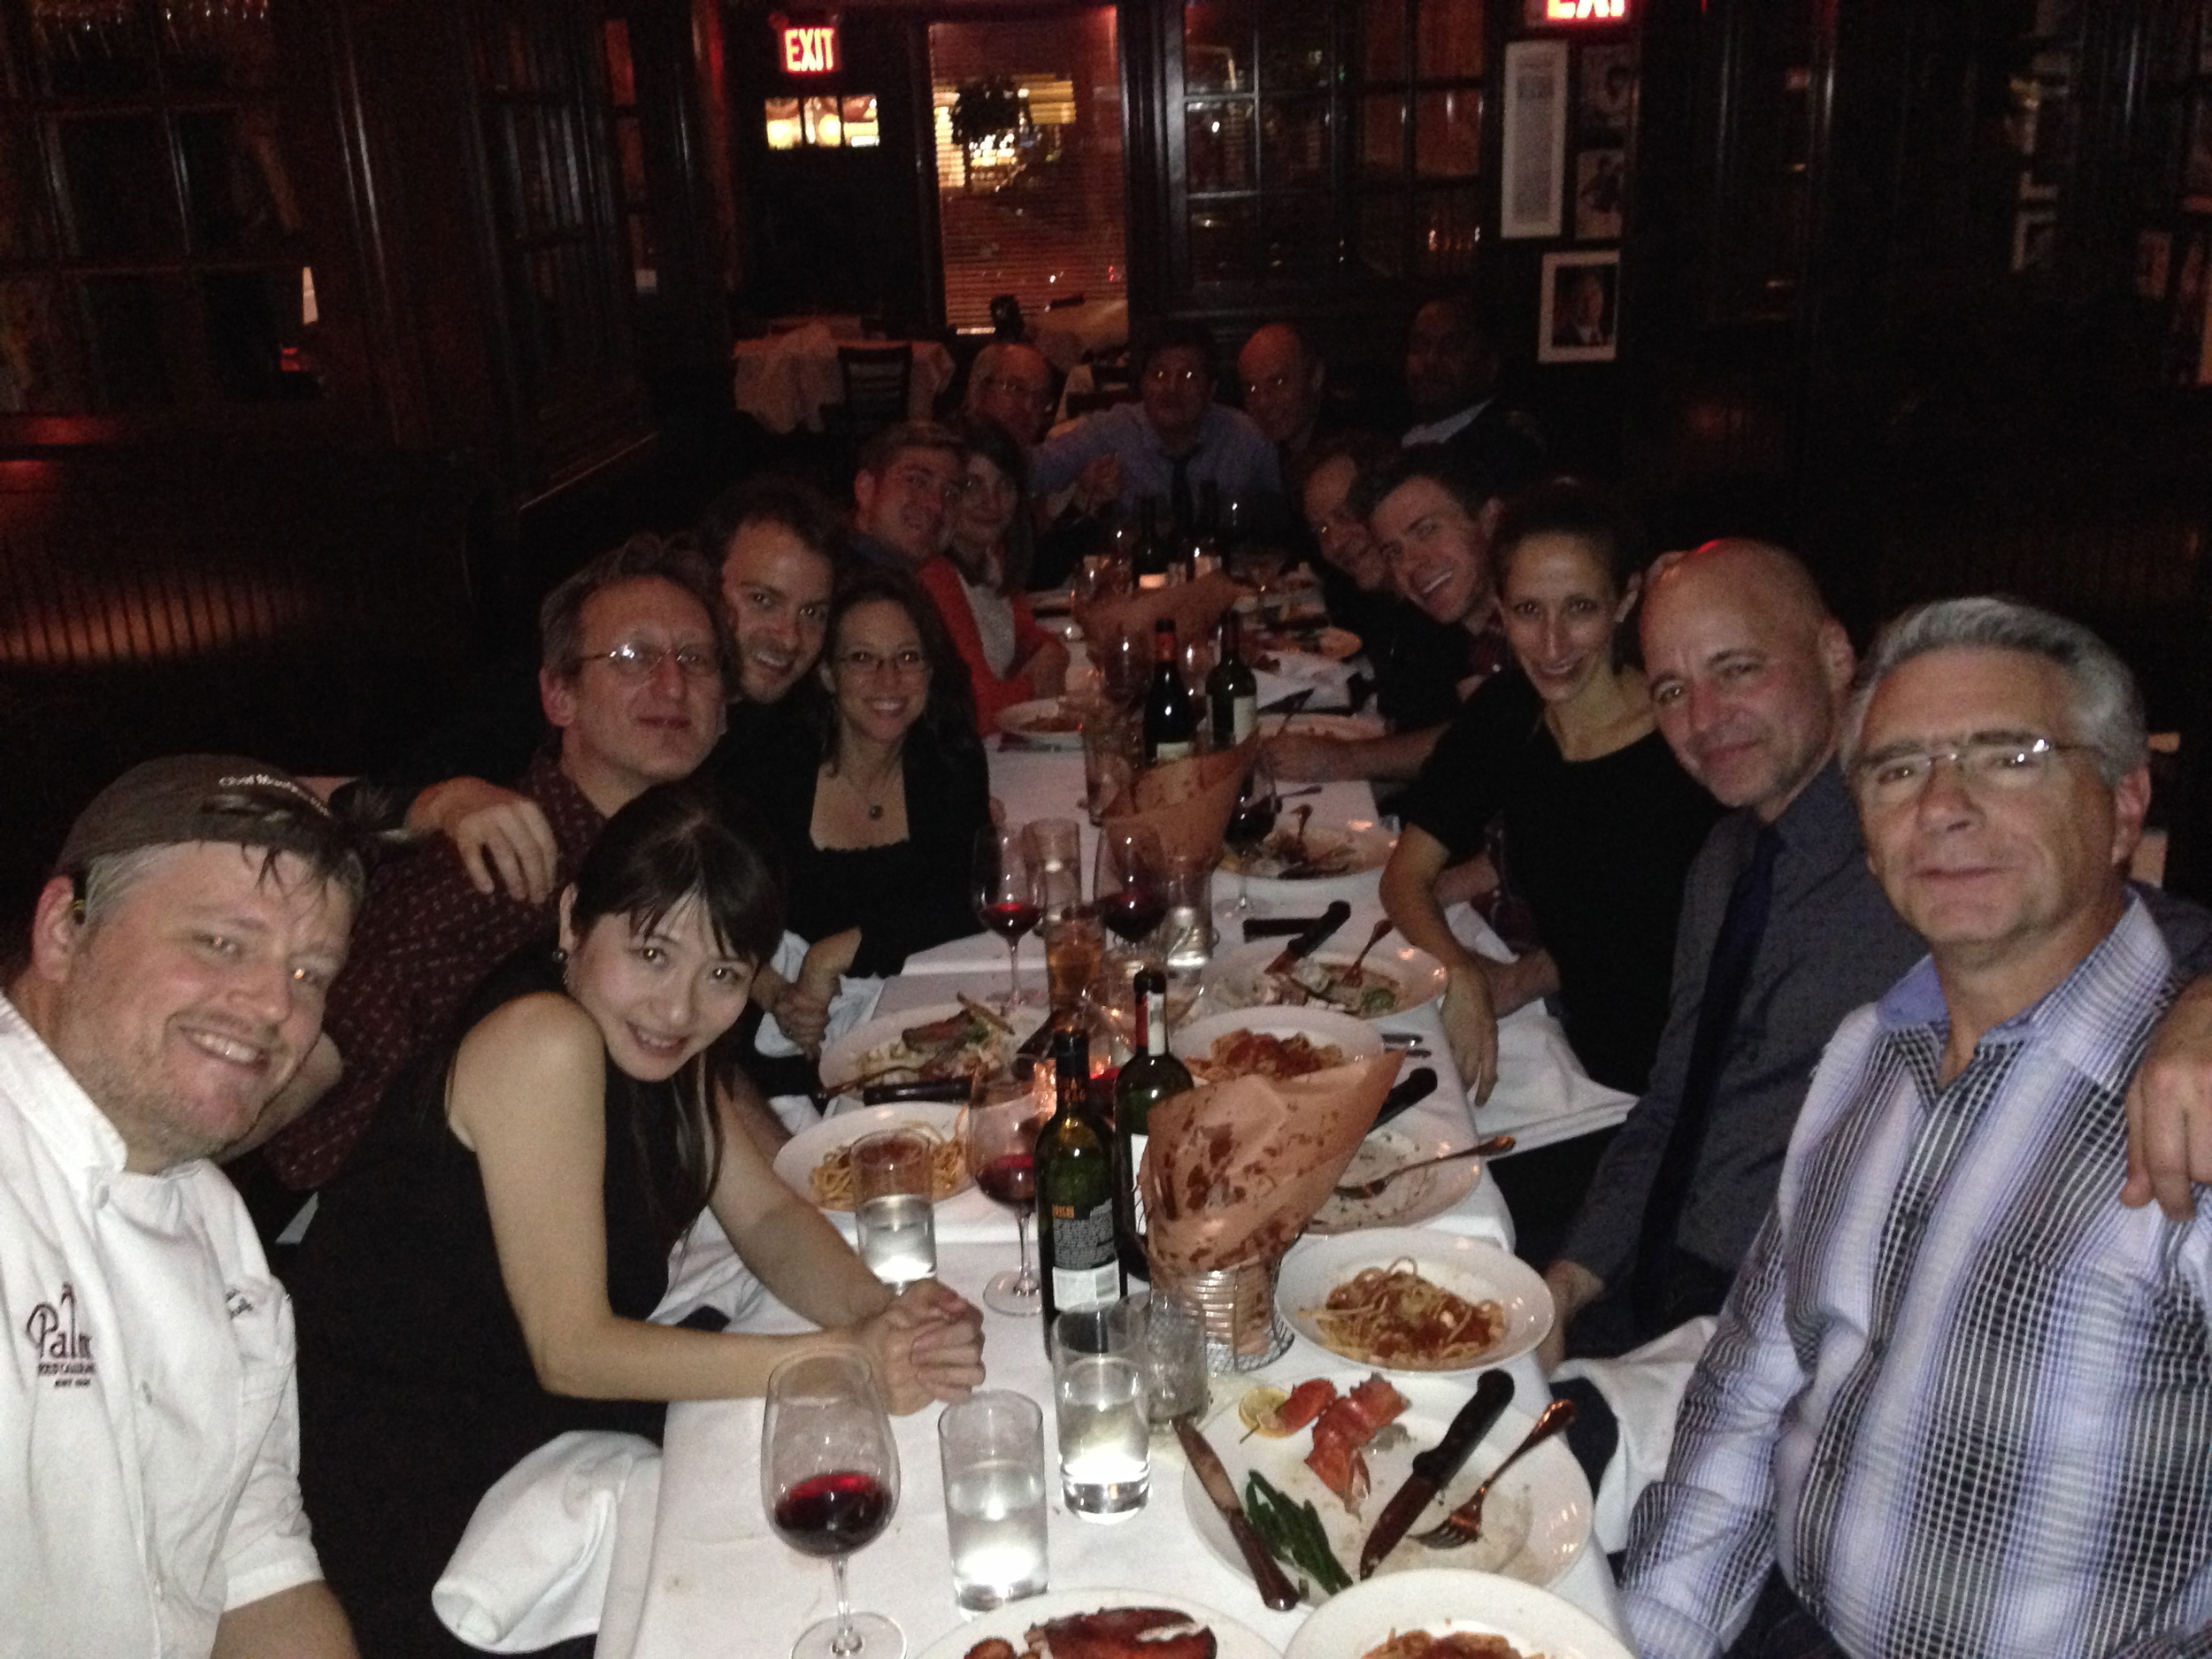 Kinky Boots band dinner at the Palm Too.